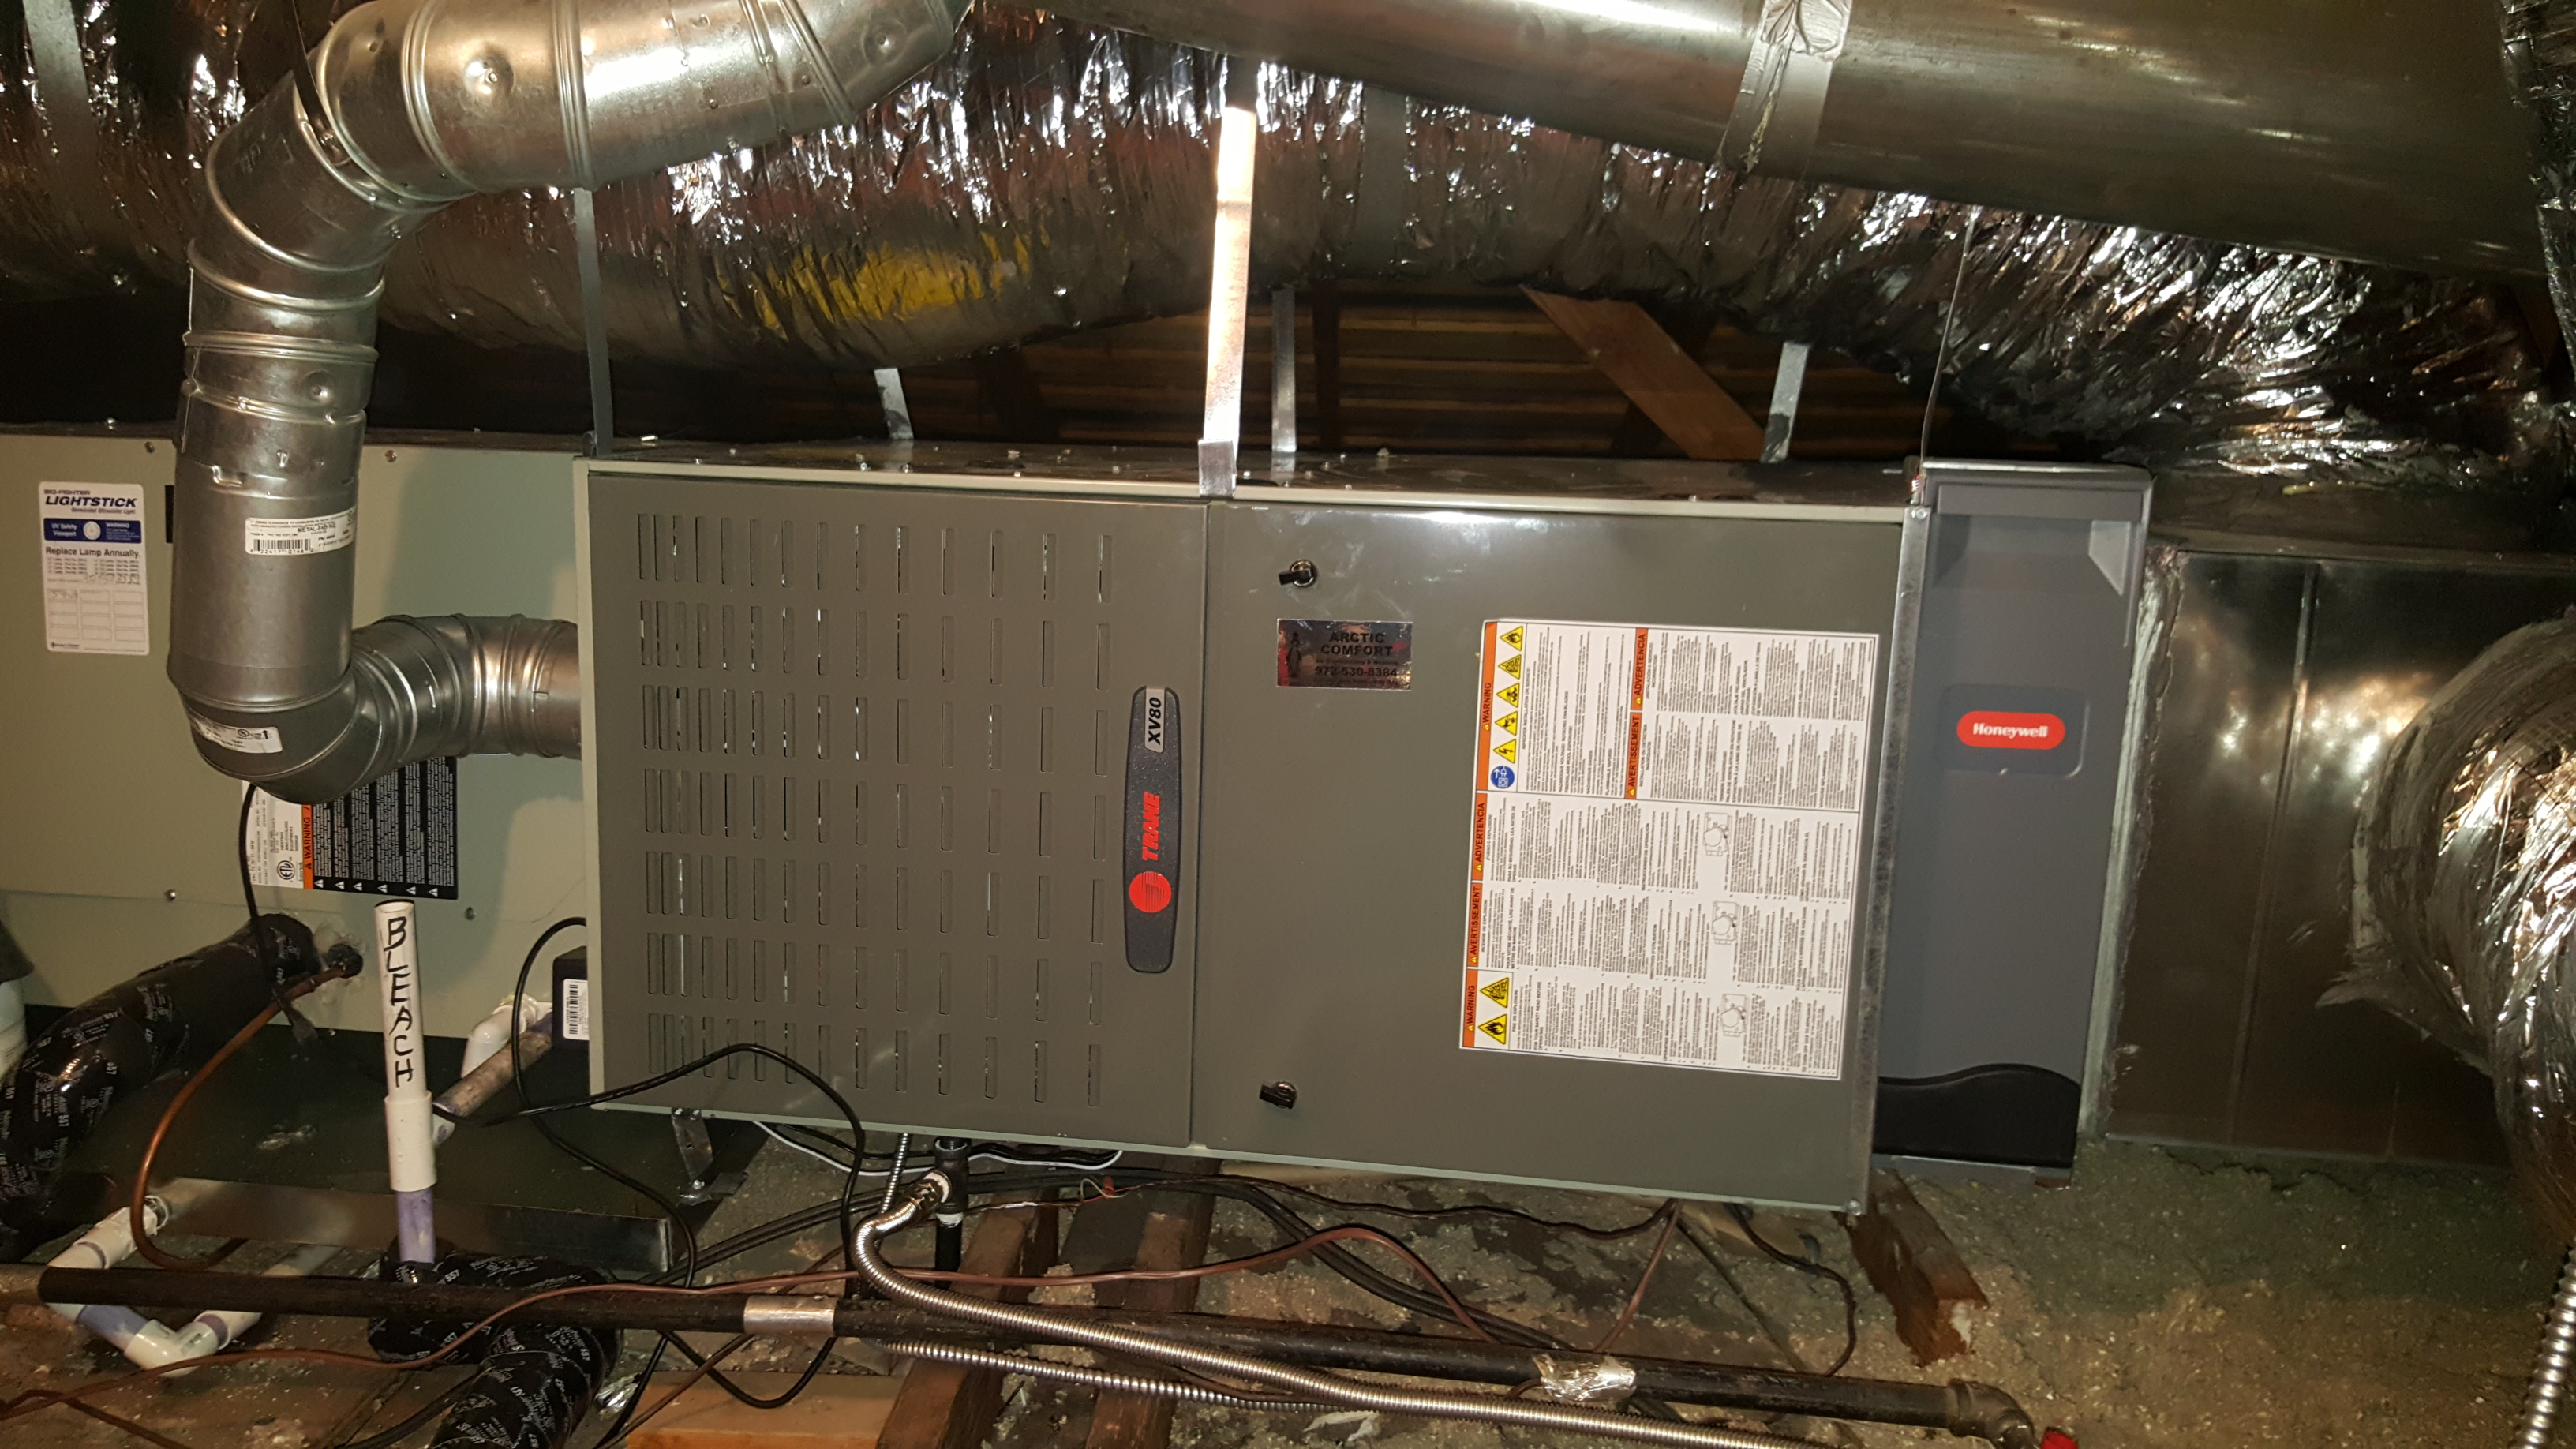 Trane Furnace and Honeywell Media Filter System